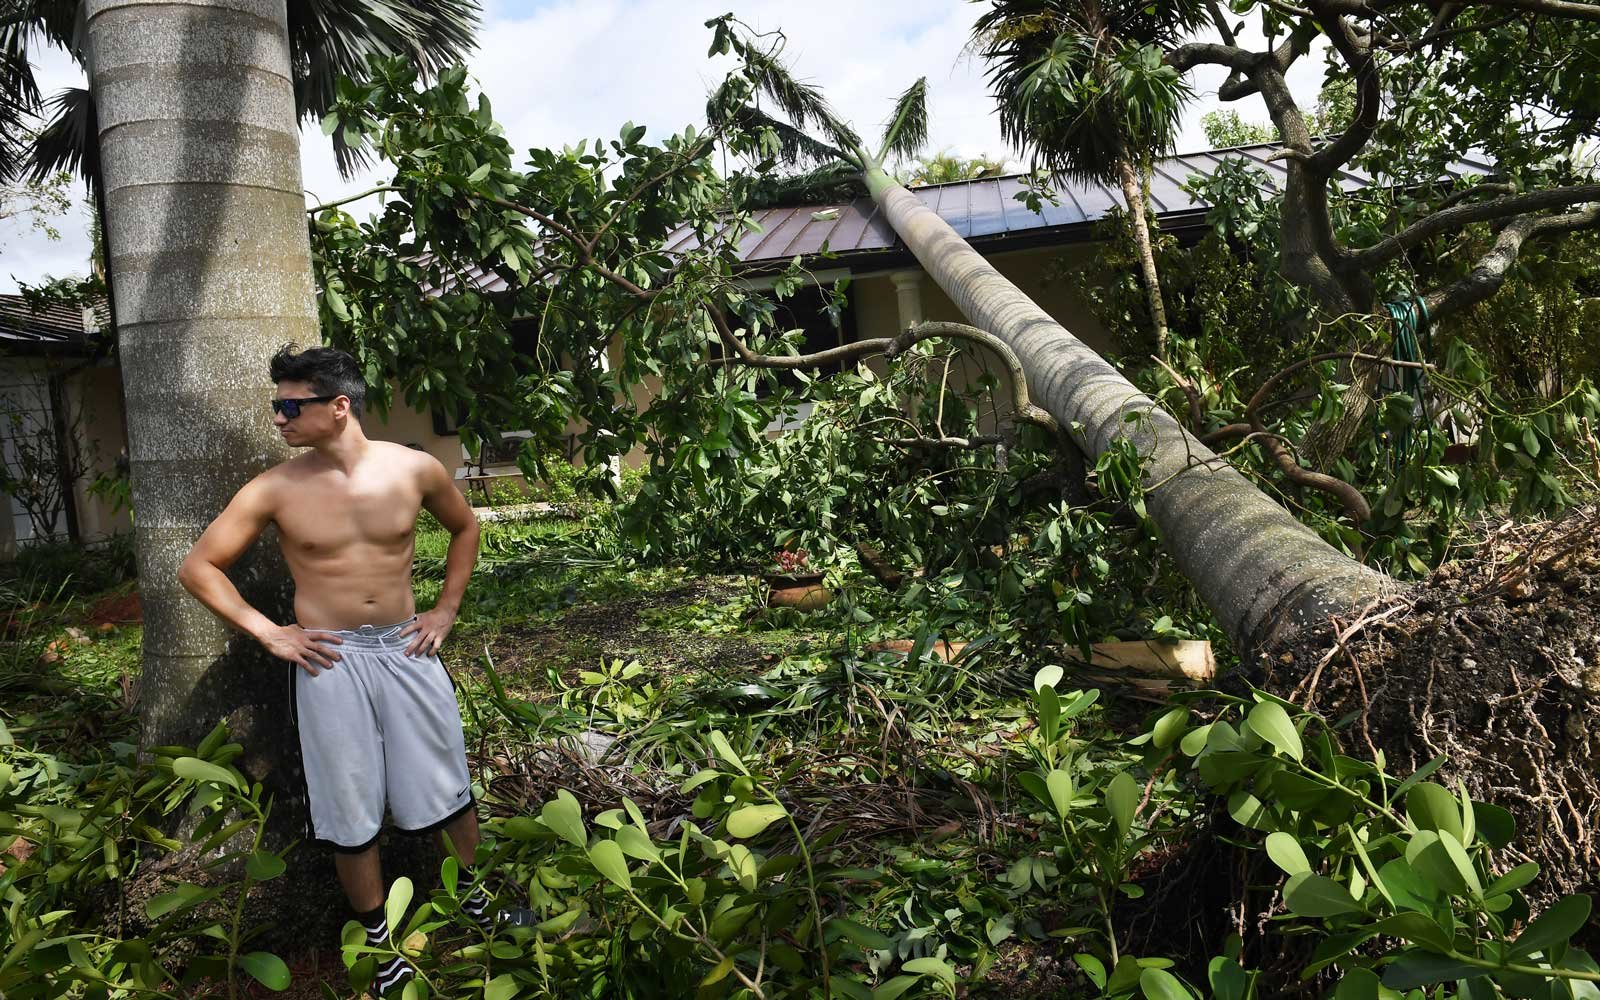 Chris Perez stands near a downed palm tree that landed on his family's home during Hurricane Irma in the Palmetto Bay on Monday September 11, 2017 in Miami, FL